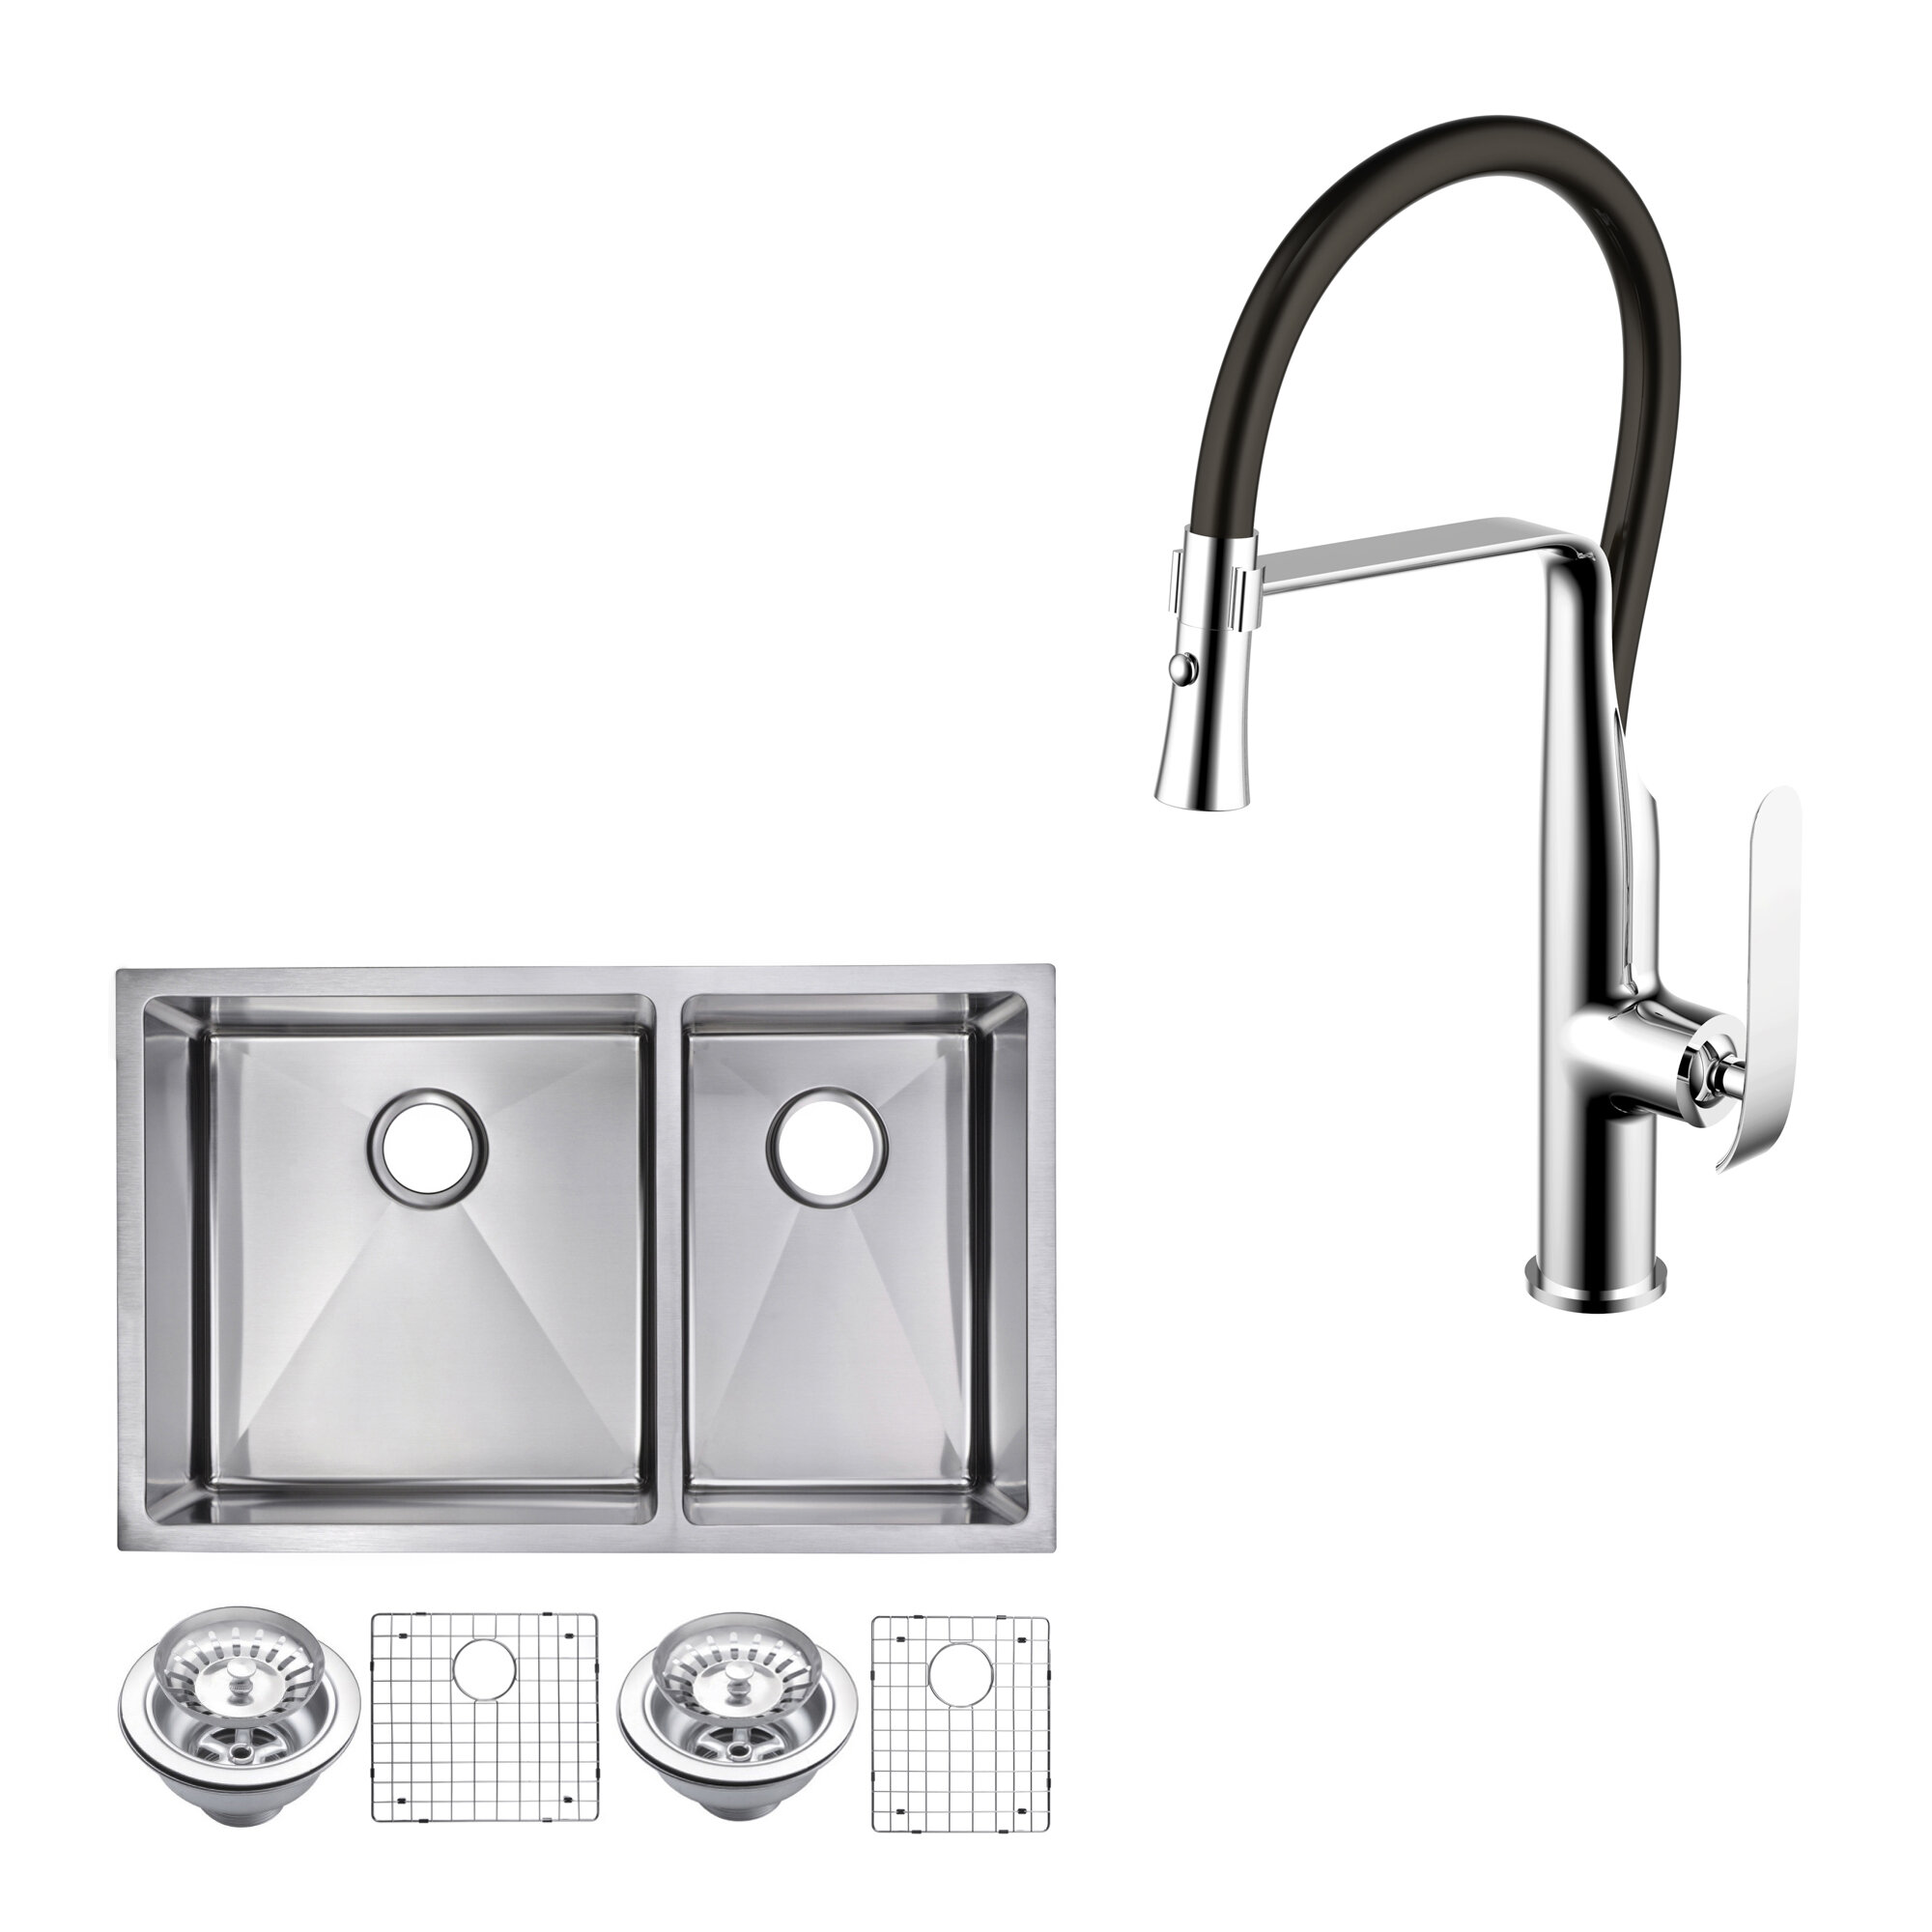 Dcor Design All In One Stainless Steel 32 L X 20 W Double Basin Undermount Kitchen Sink With Faucet Wayfair